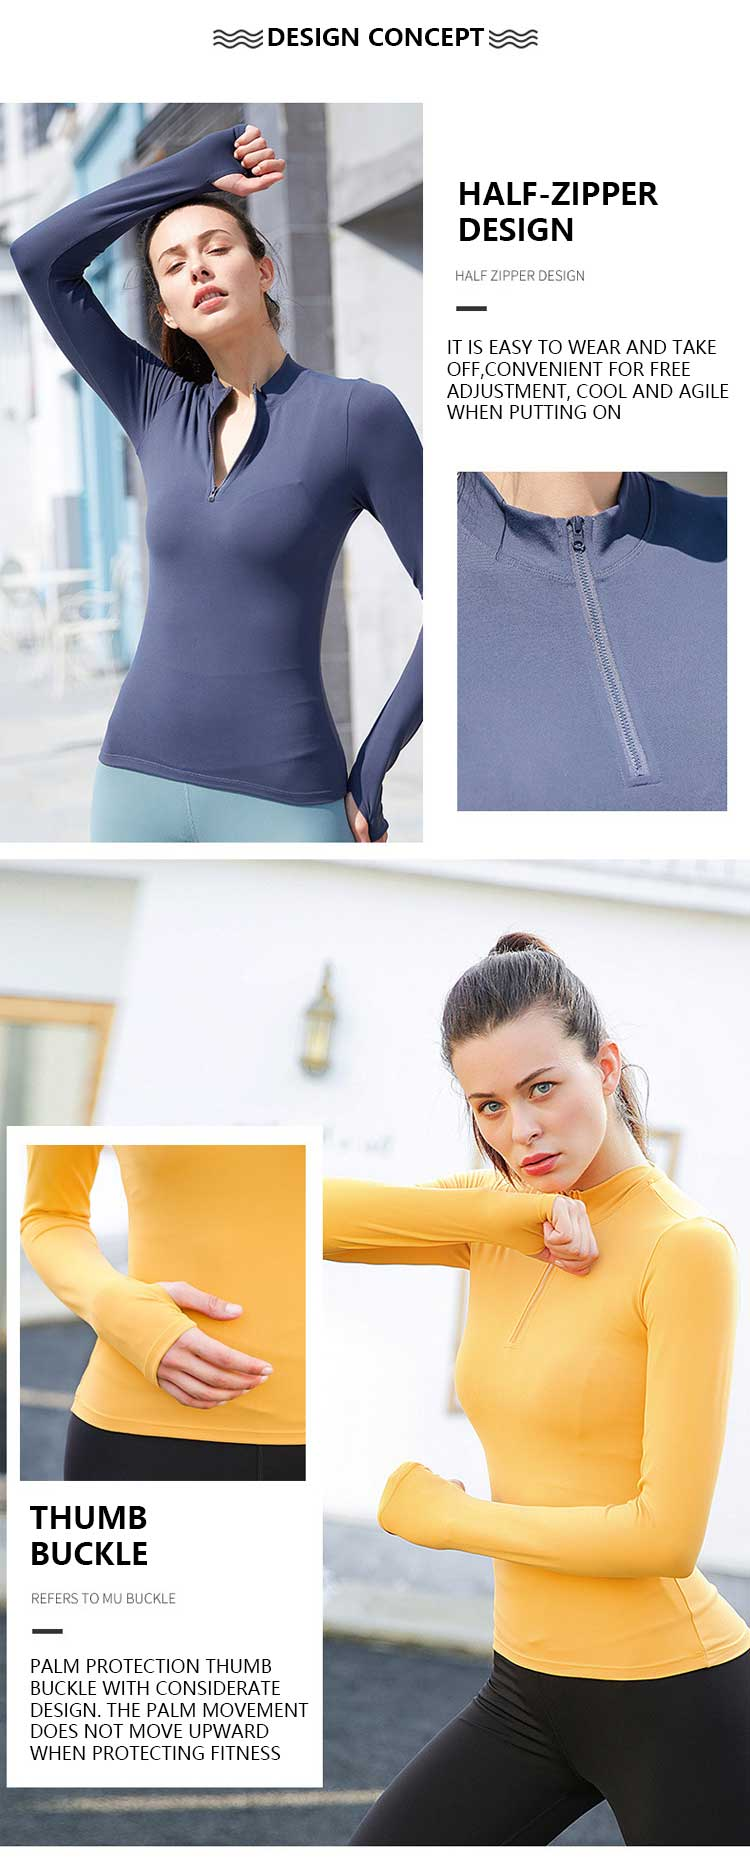 Long sleeve zip gym top design concepts of zipper and thumb